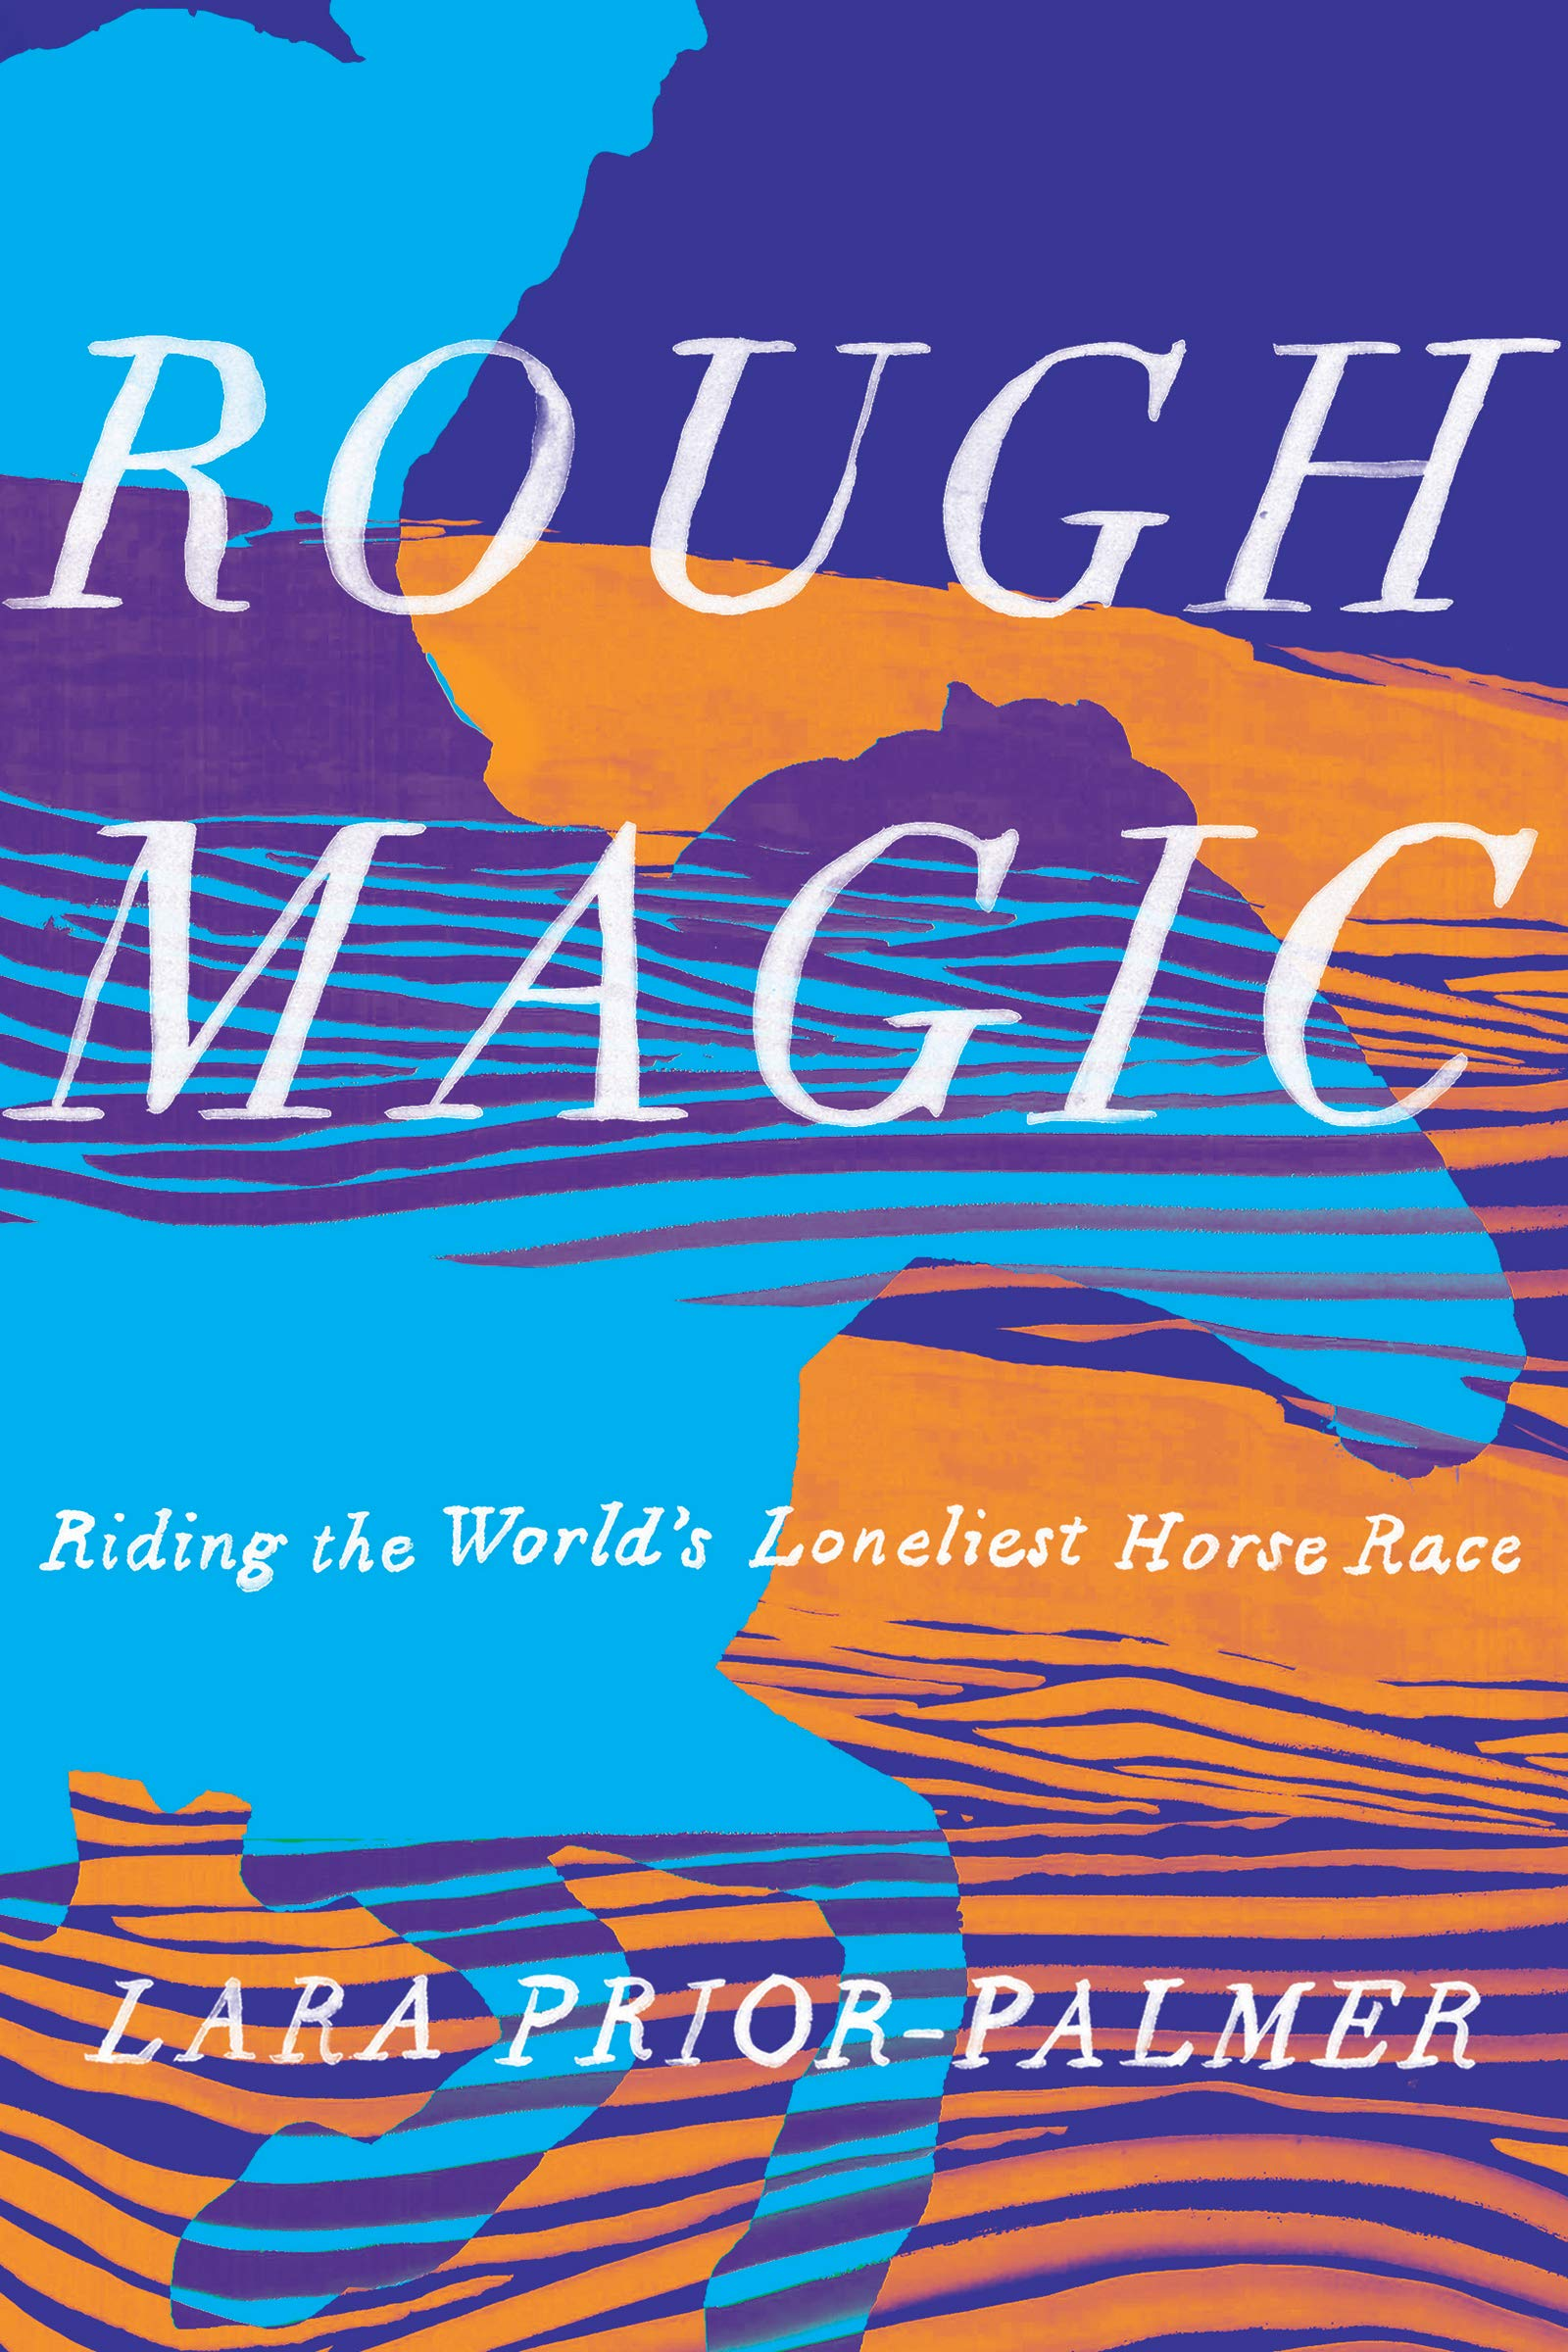 Rough Magic: Riding the World's Loneliest Horse Race by Lara Prior-Palmer Catapult, 2019   https://books.catapult.co/products/rough-magic-by-lara-prior-palmer